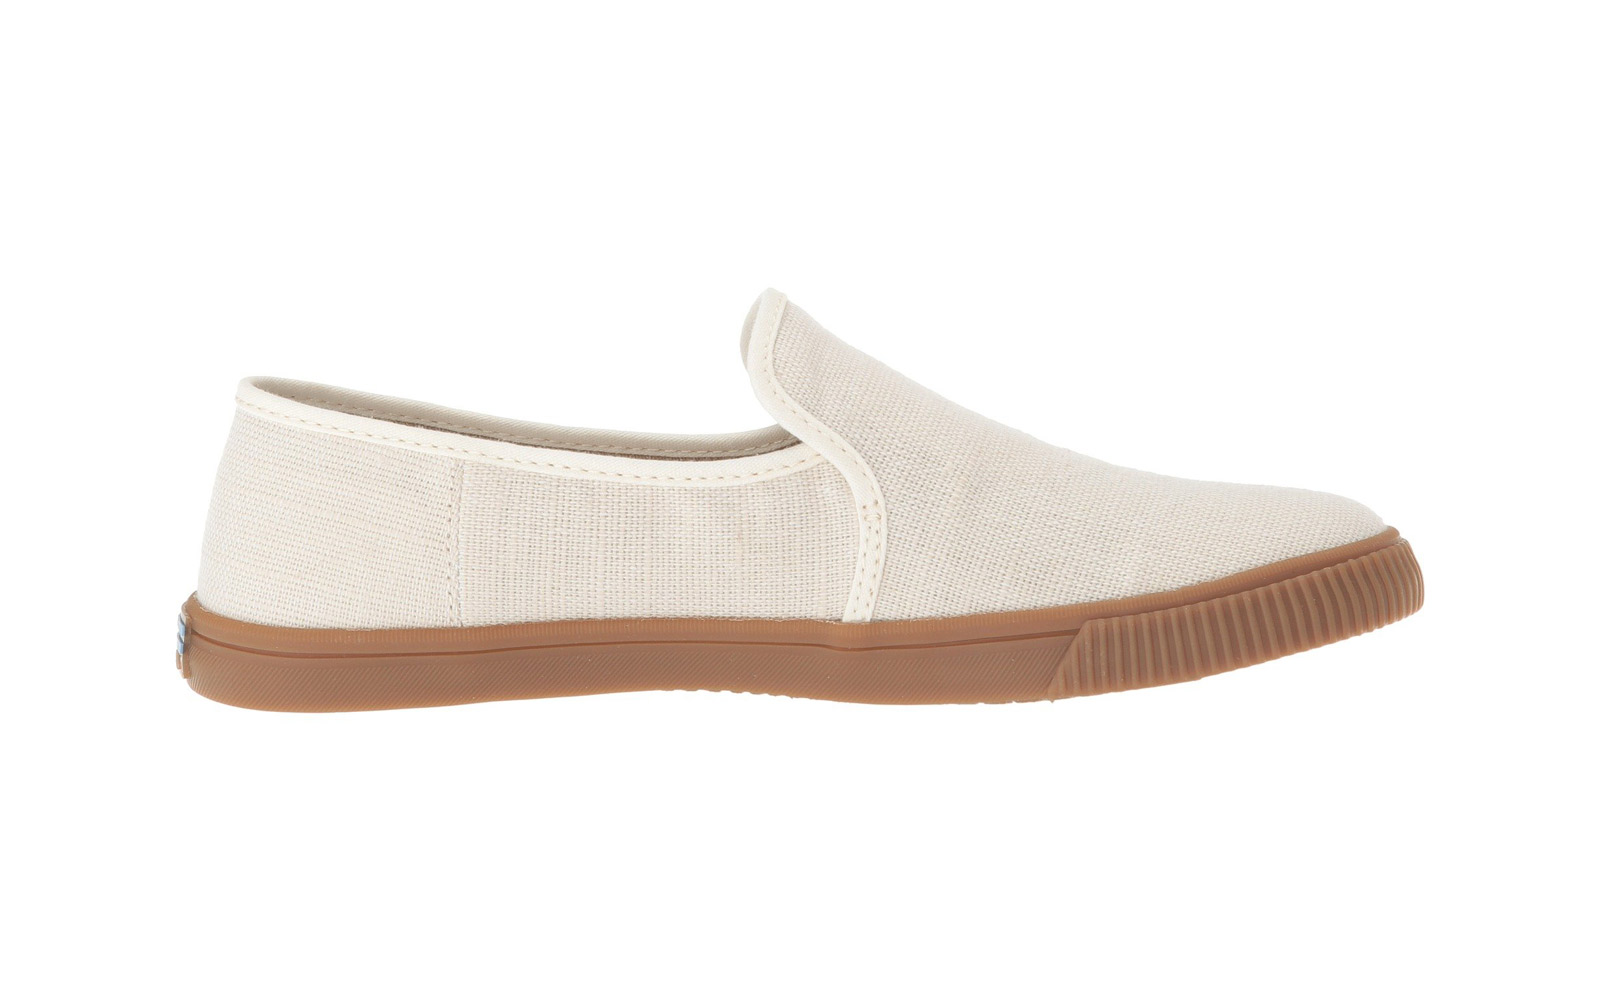 The Best Women's Walking Shoes for Travel   Travel + Leisure